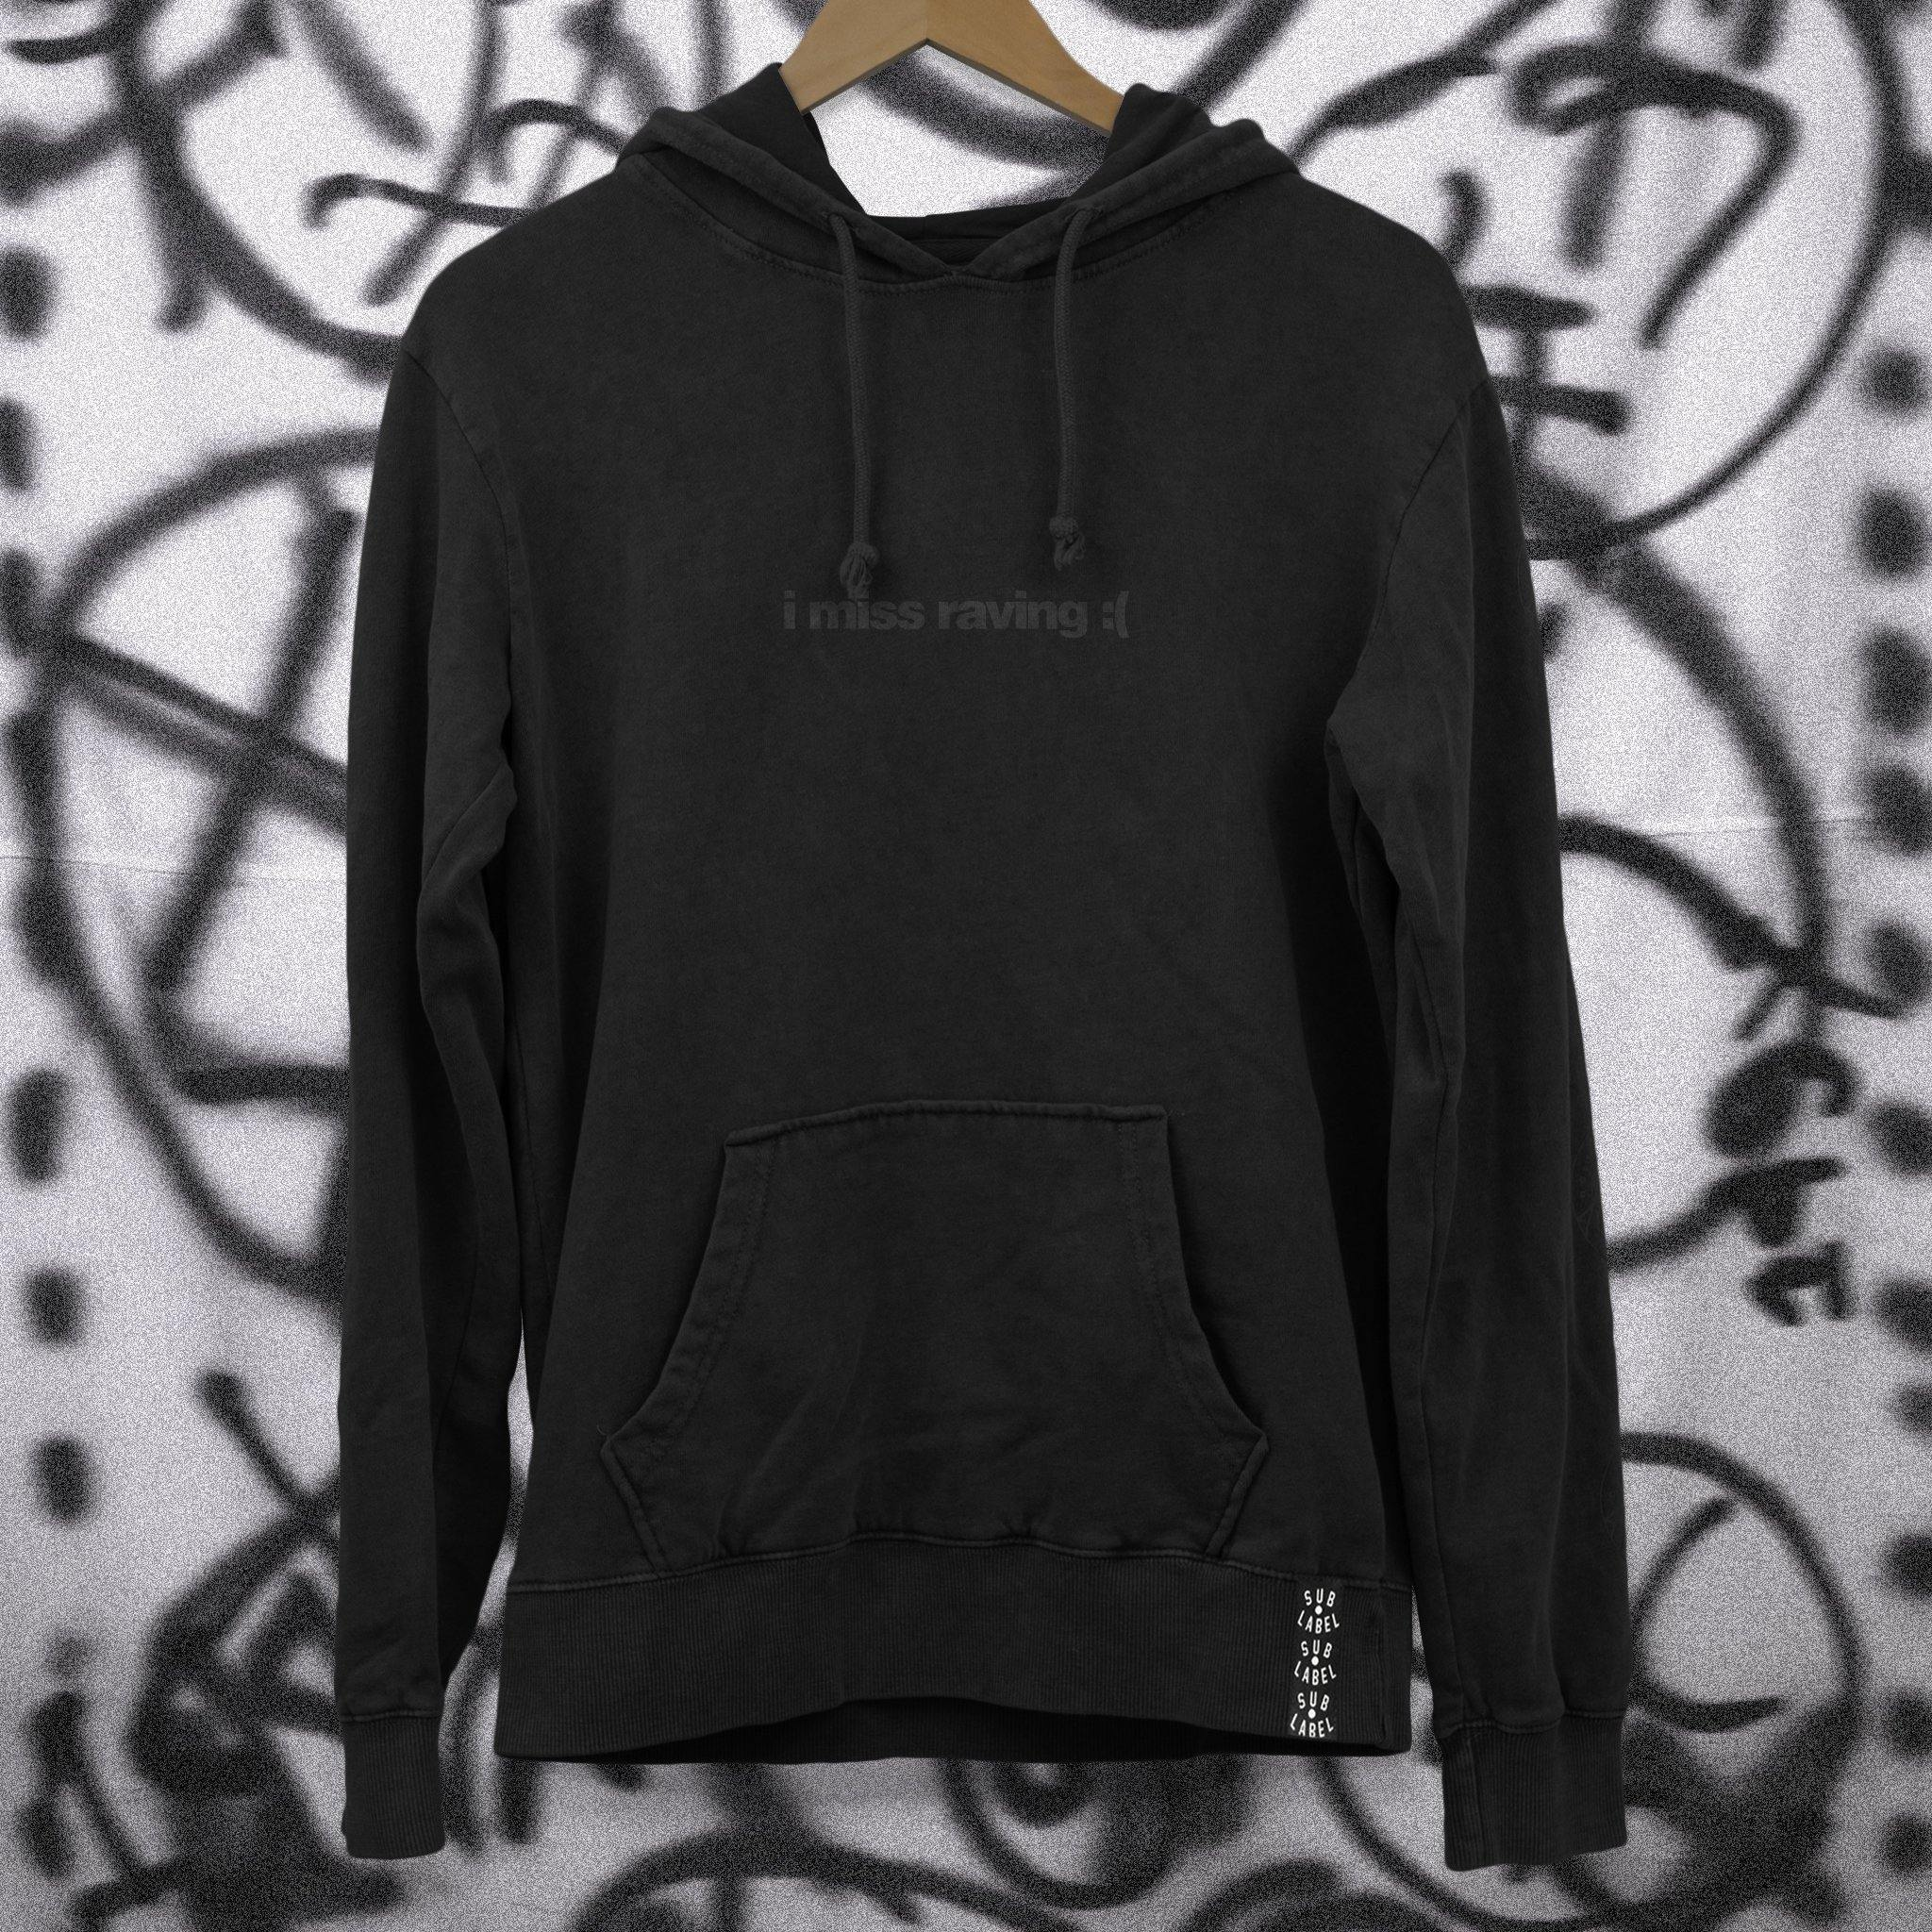 i miss raving • Unisex Black on Black Hoodie - sub•label